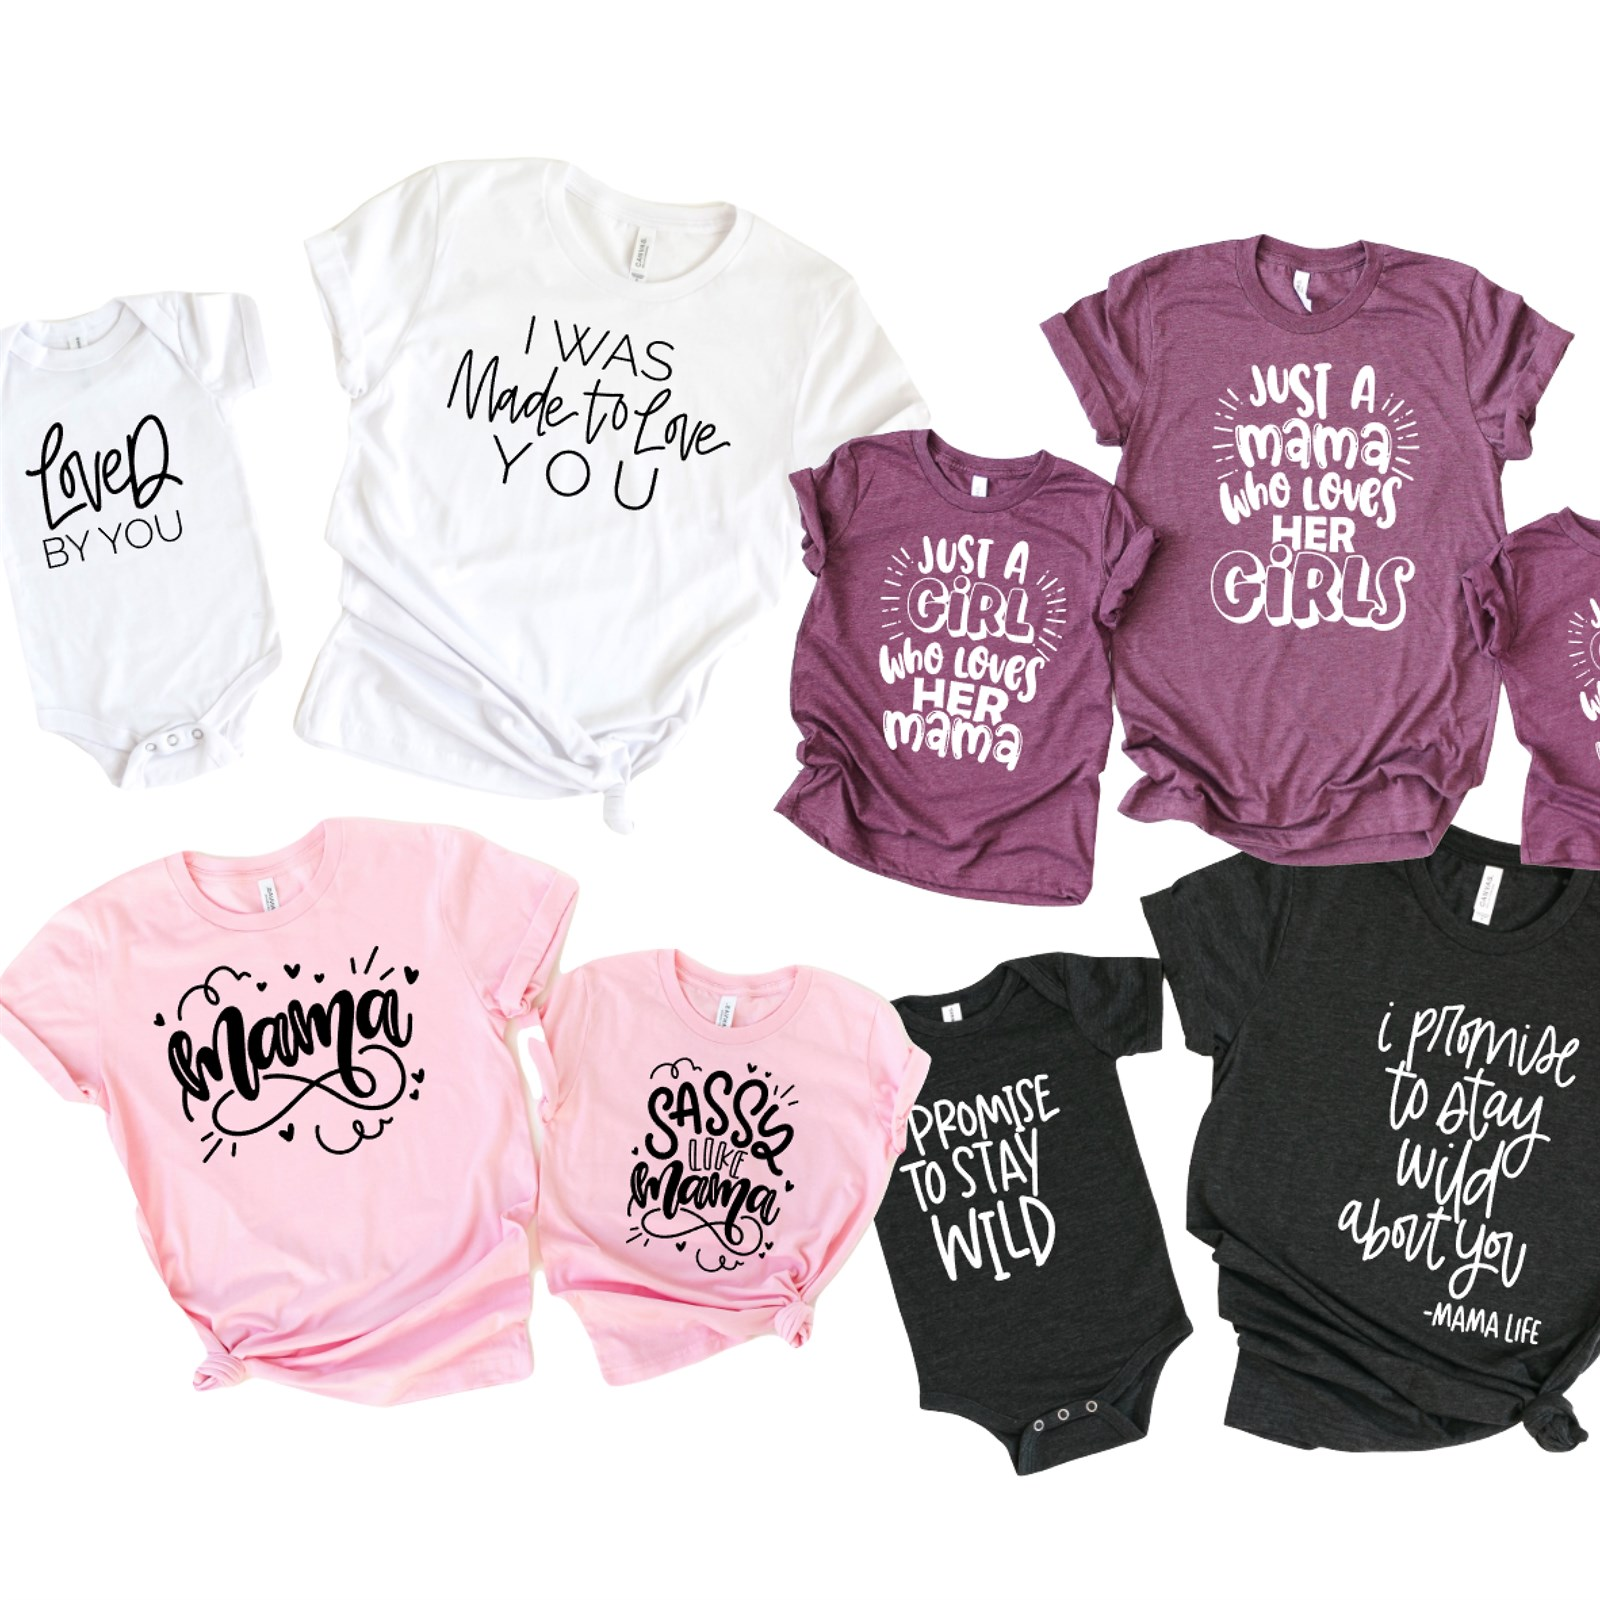 Matching Mother and Daughter Shirts, Only $14.99 Shipped (save $13.96)!